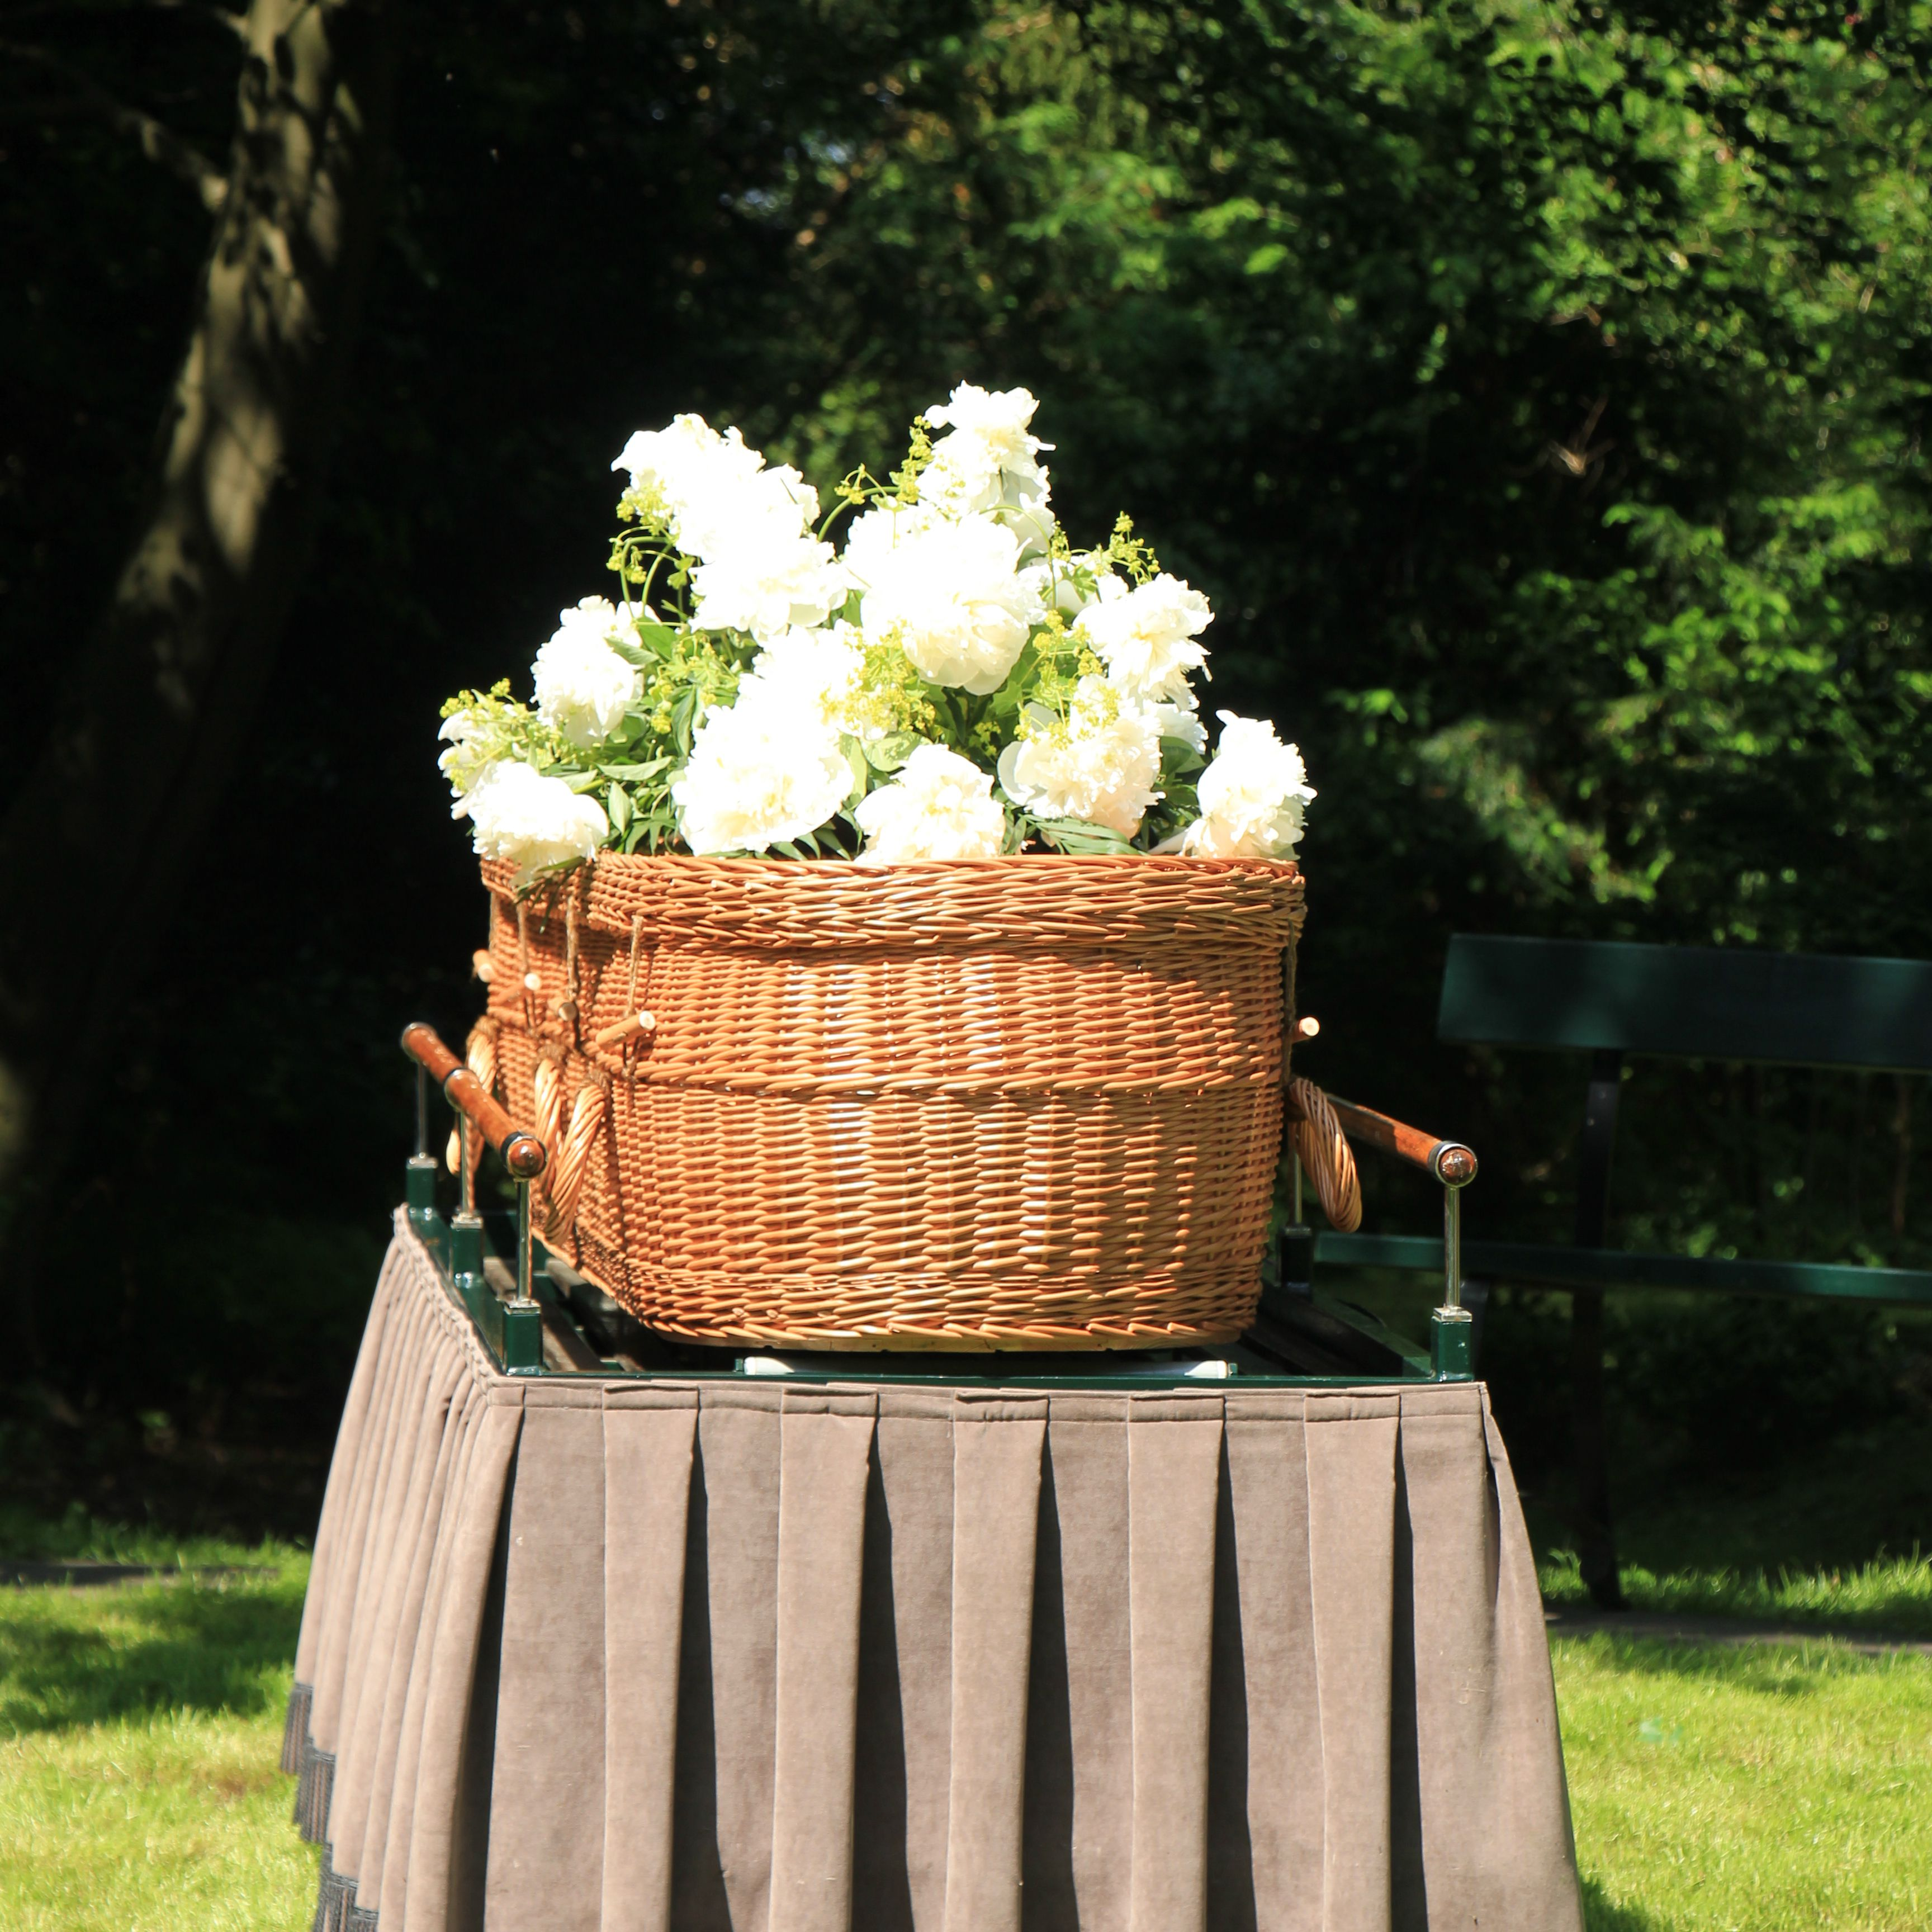 Green Burial: The Eco-Friendly Alternative to Funerals